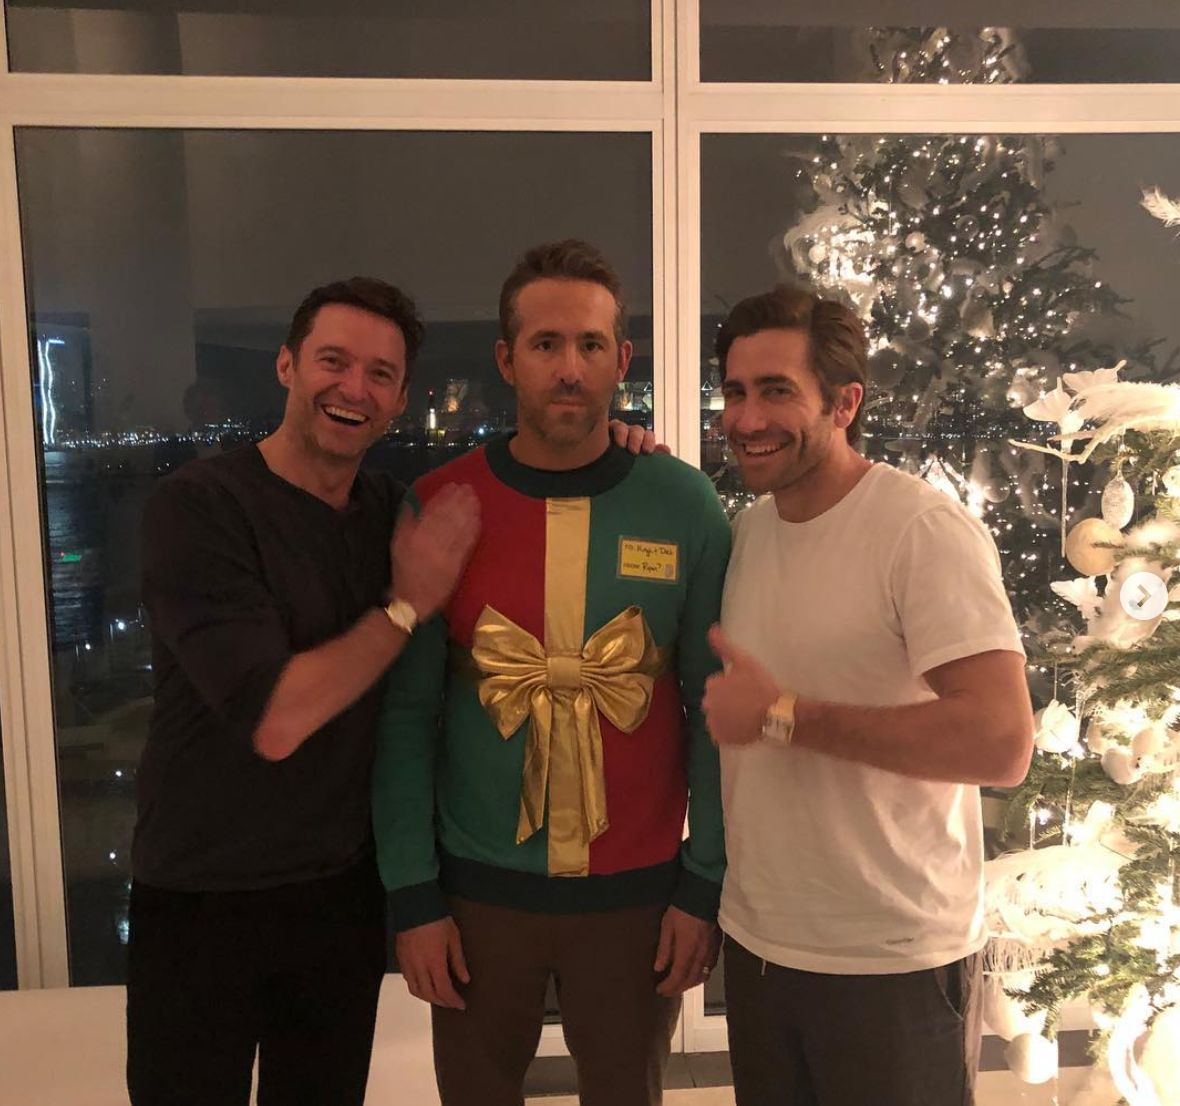 Ryan Reynolds suffers a Christmas prank at the hands of Hugh Jackman and Jake Gyllenhaal.